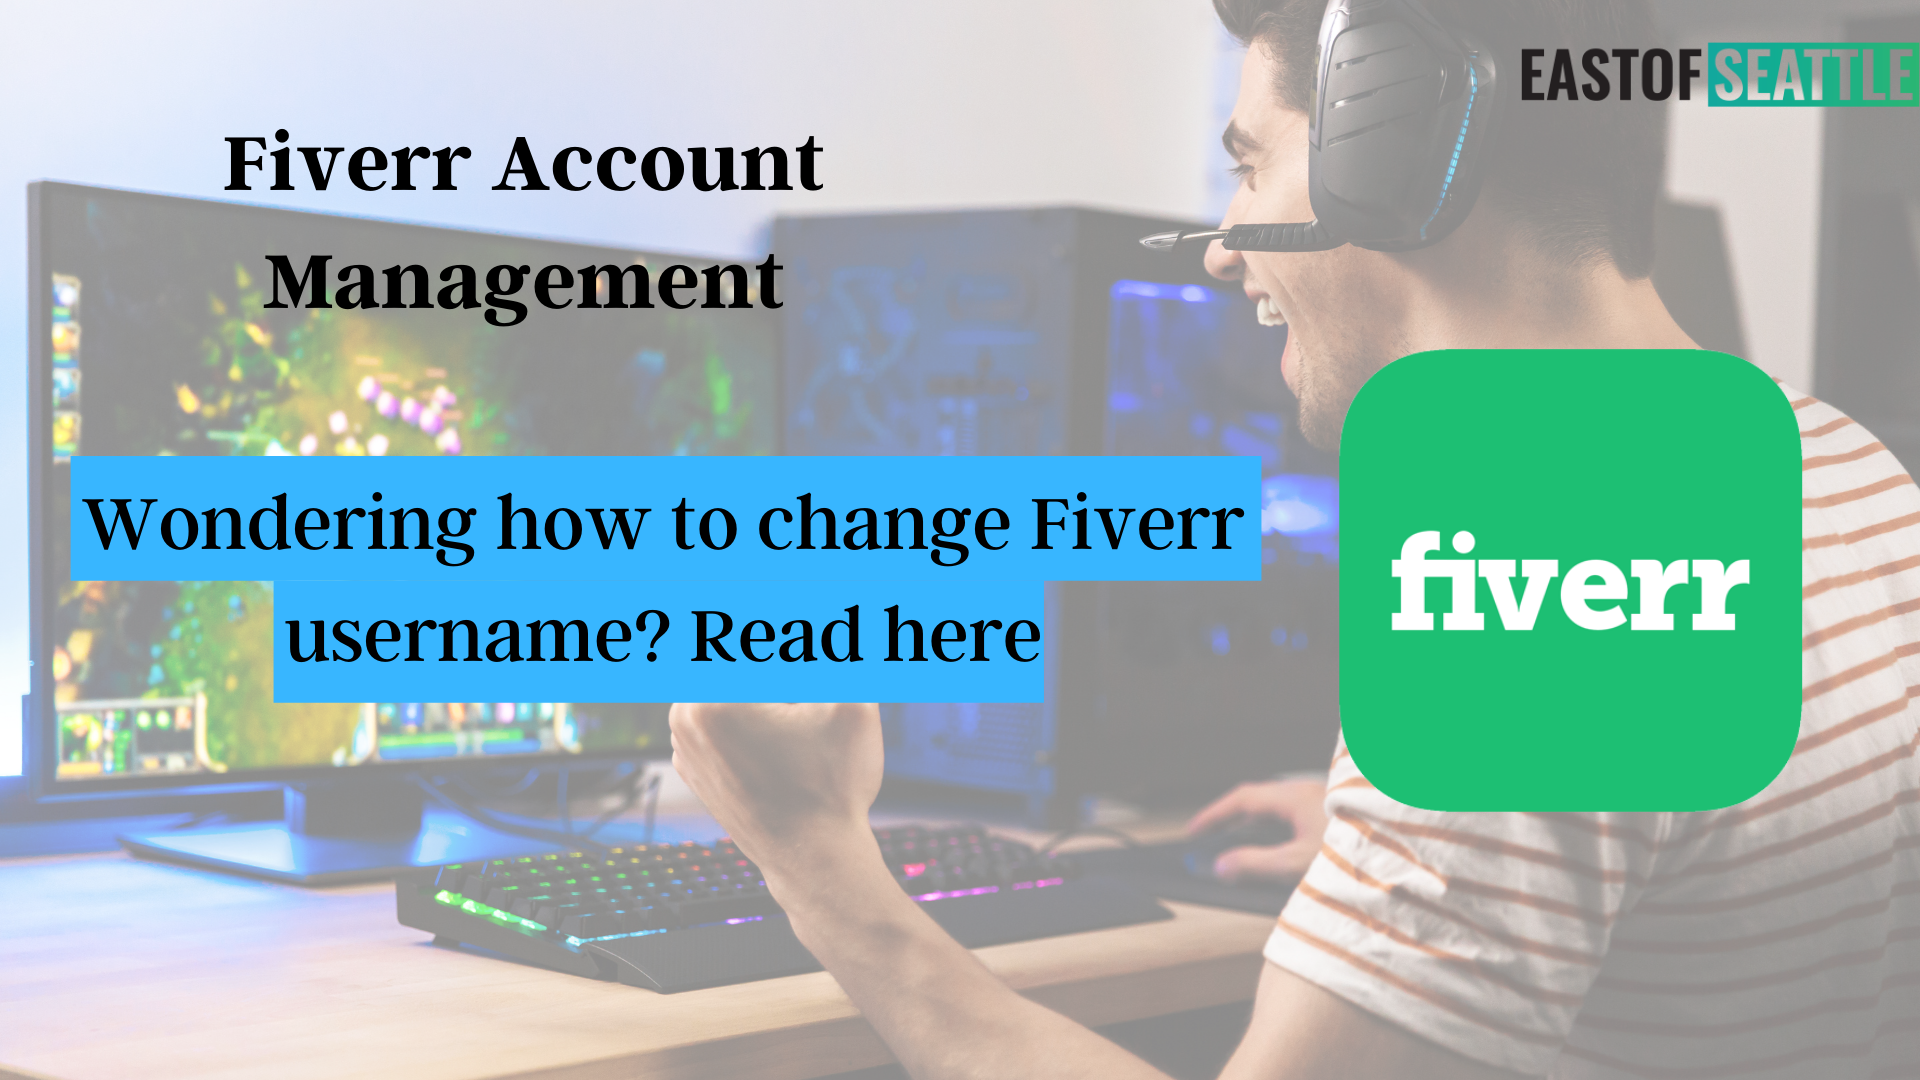 Wondering how to change Fiverr username? Read here